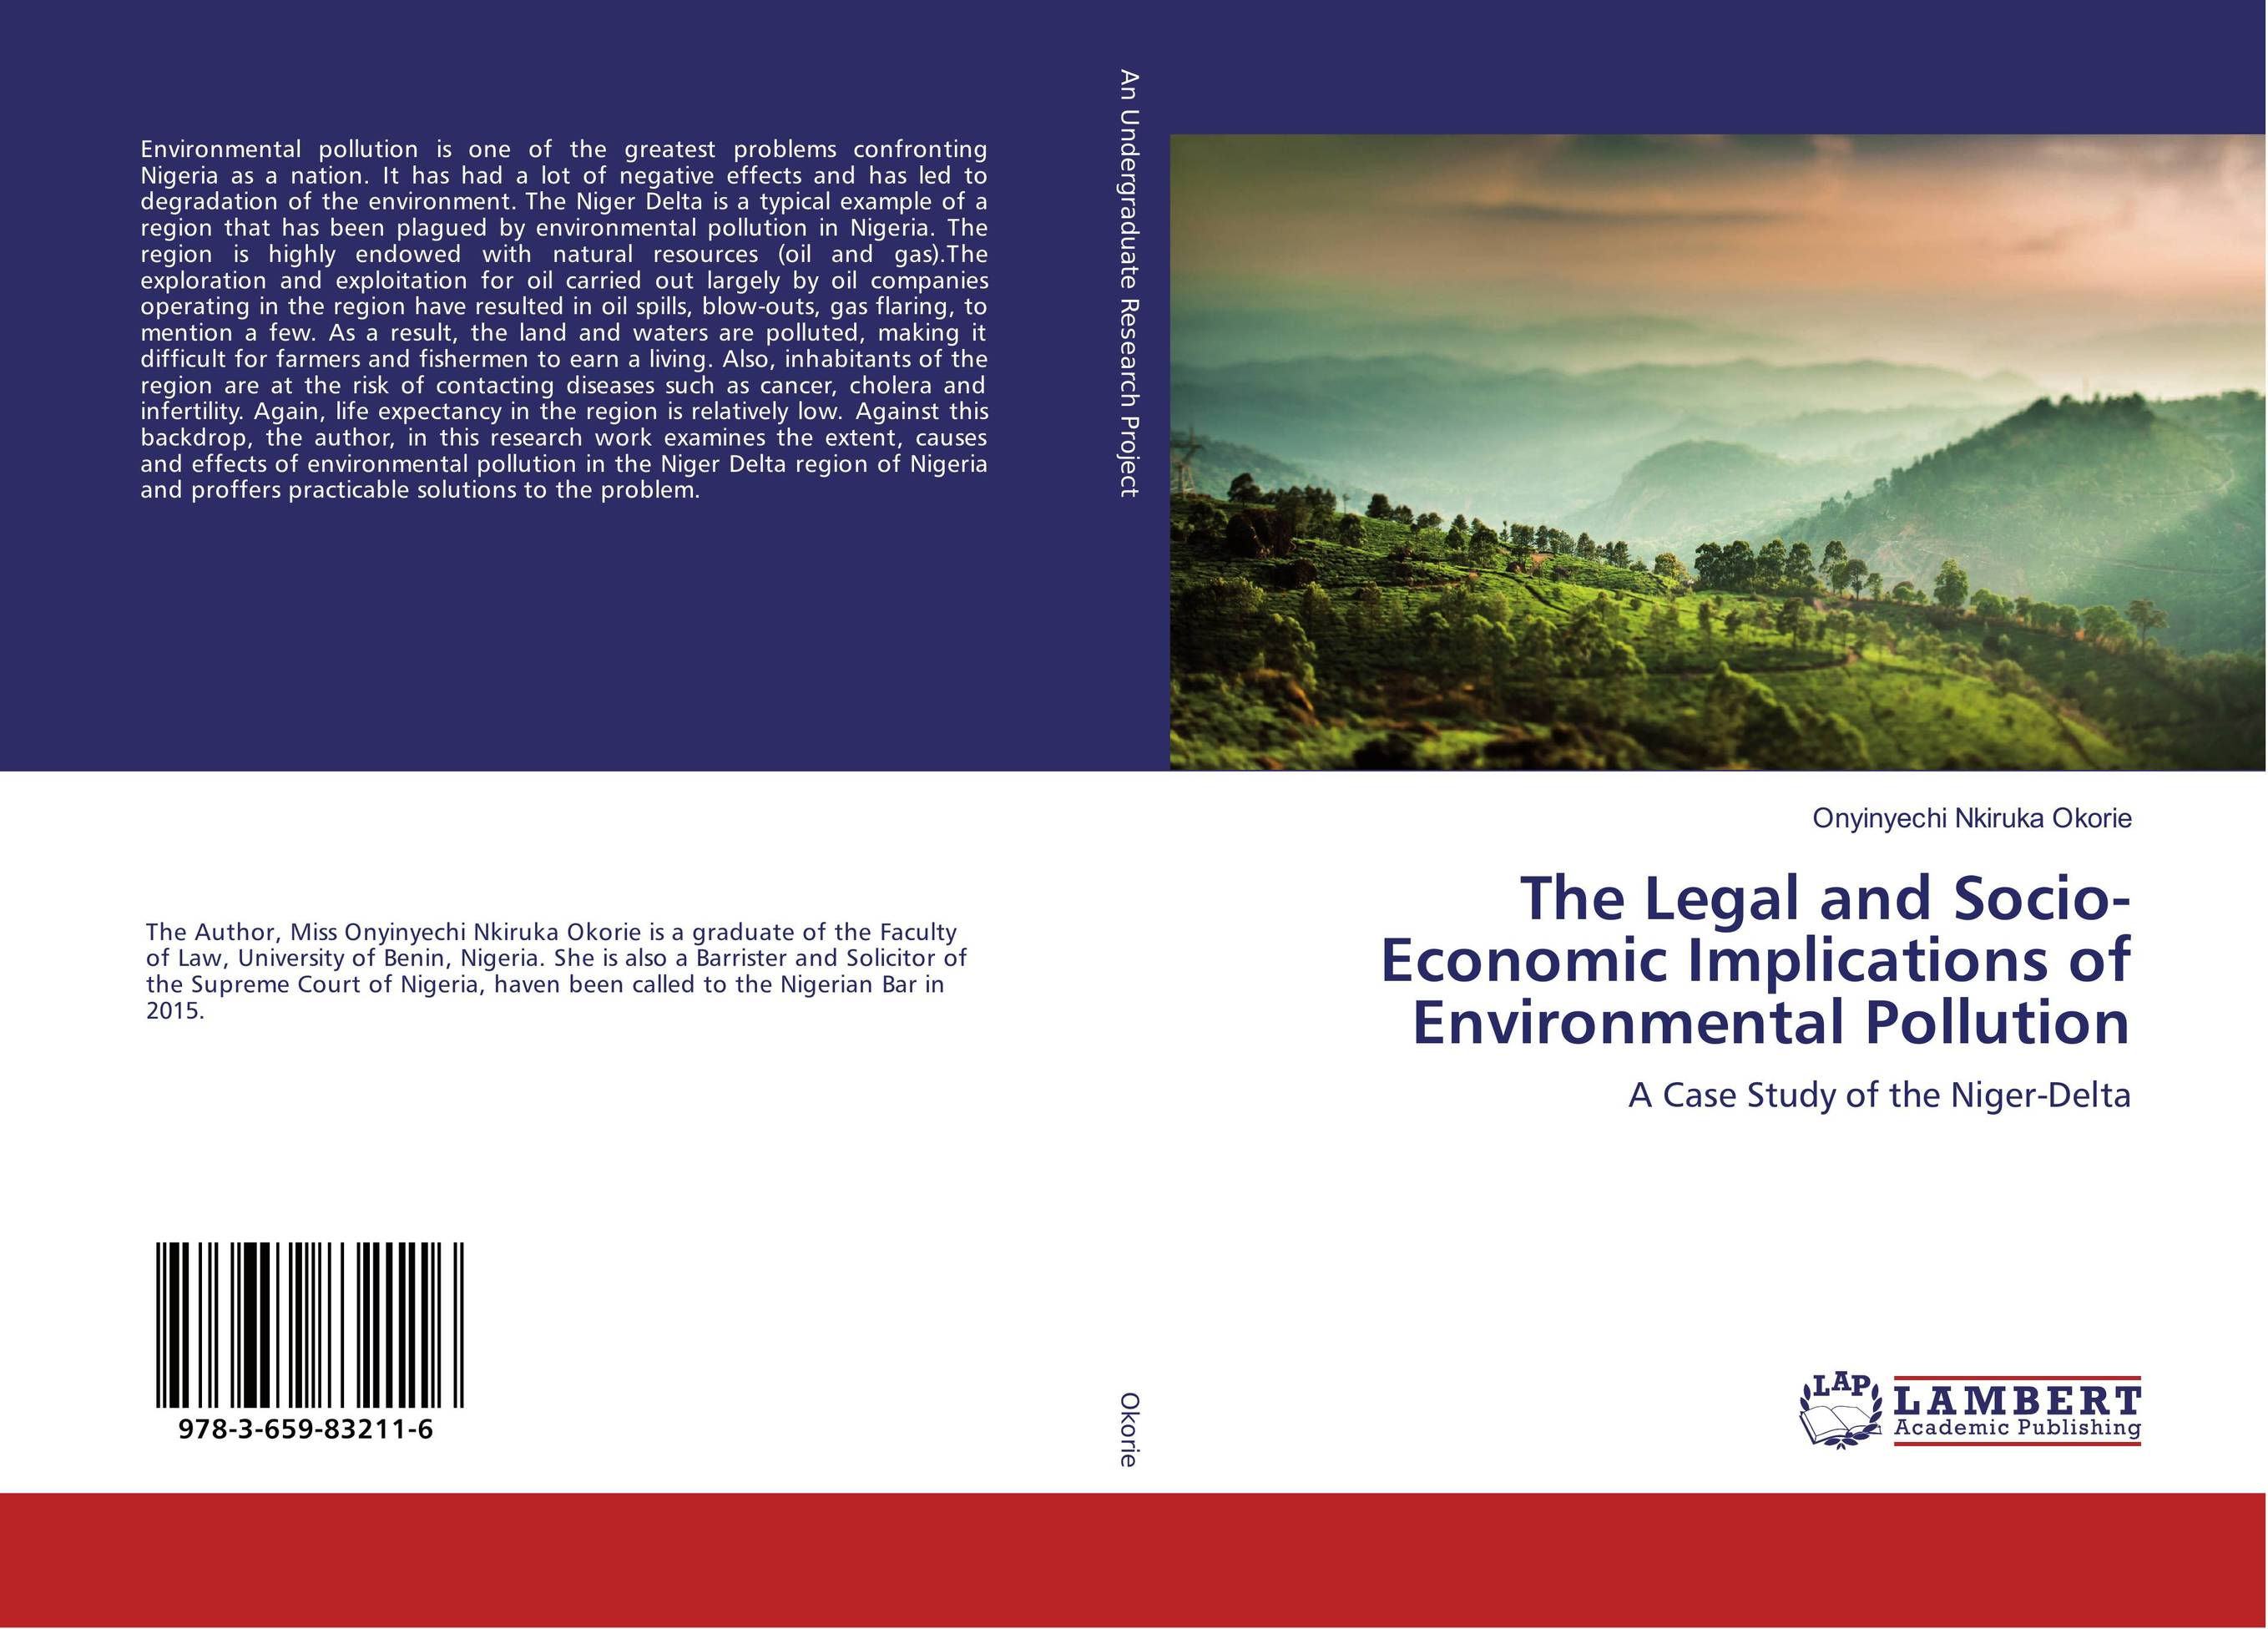 The Legal and Socio-Economic Implications of Environmental Pollution gender and socio economic wellbeing of older persons in nigeria